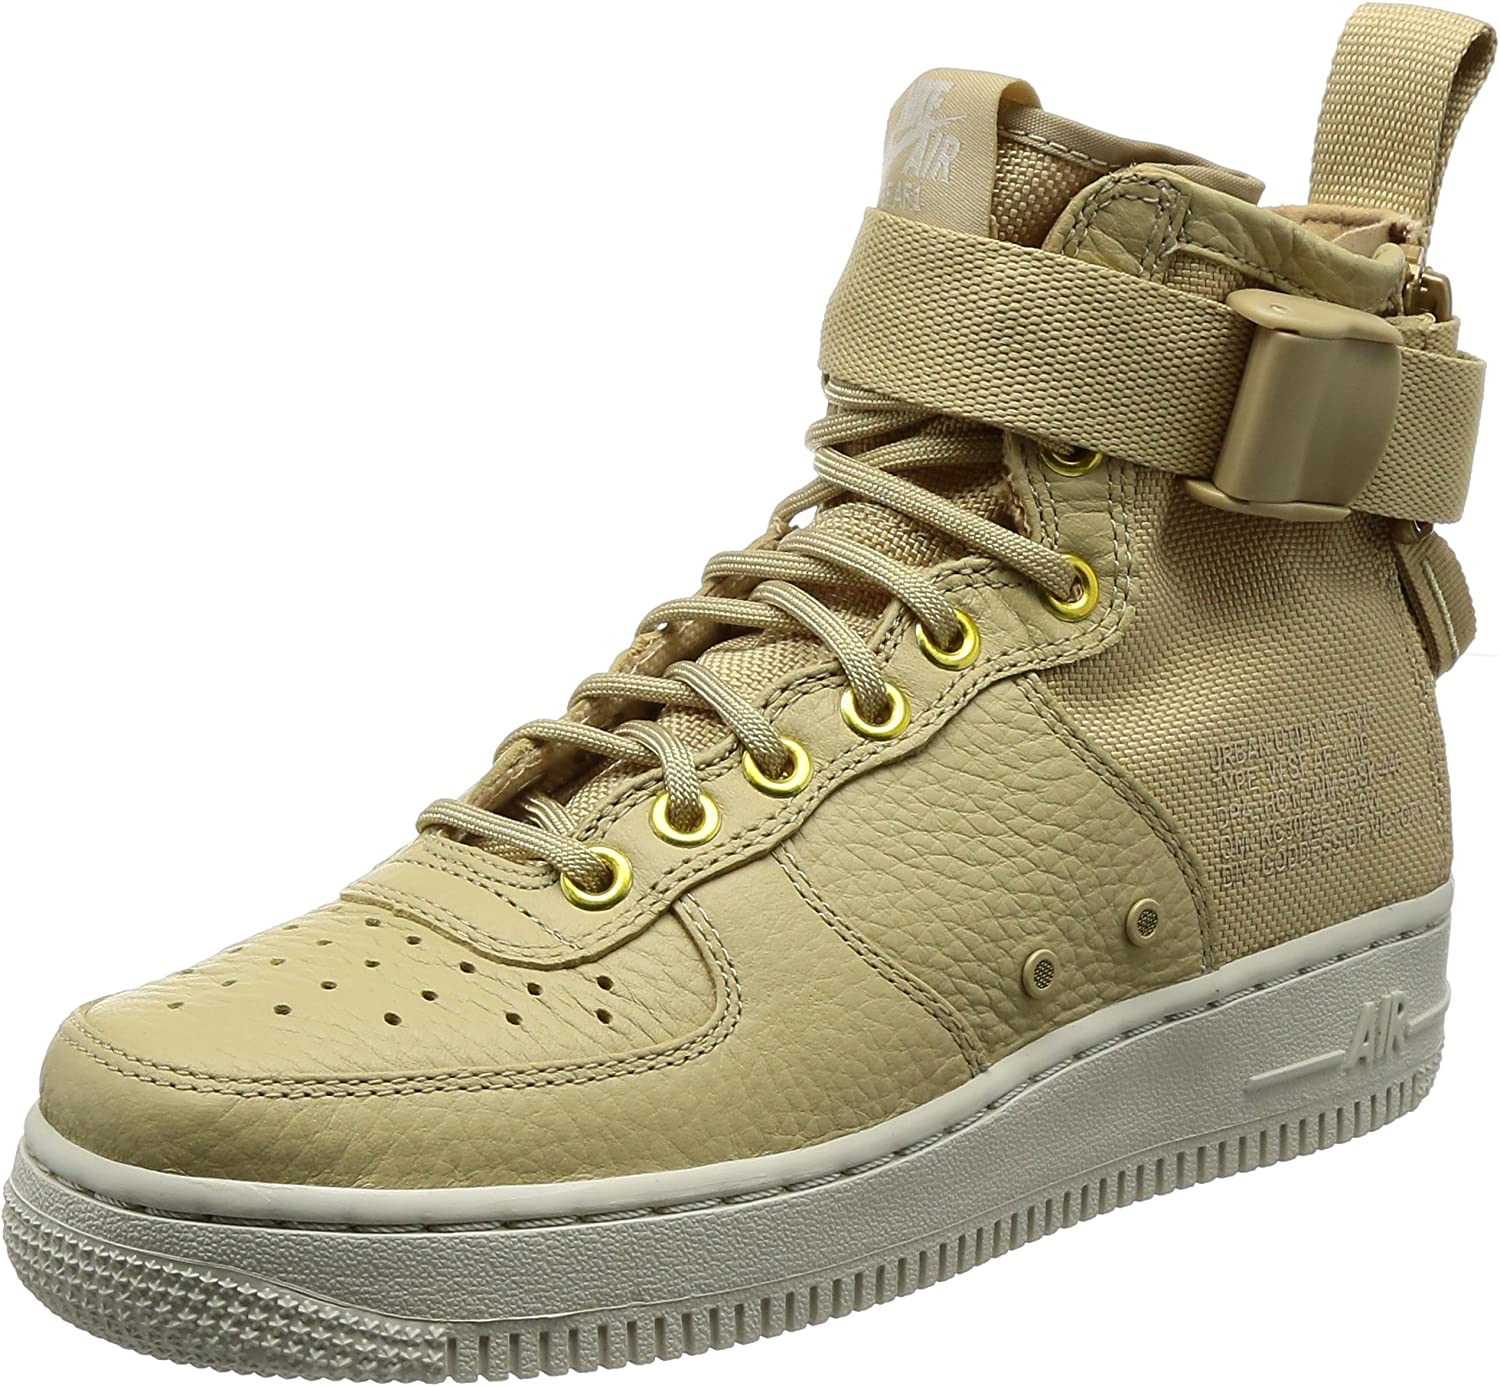 | Nike Sf Air Force 1 Mid Womens Casual Boot (8